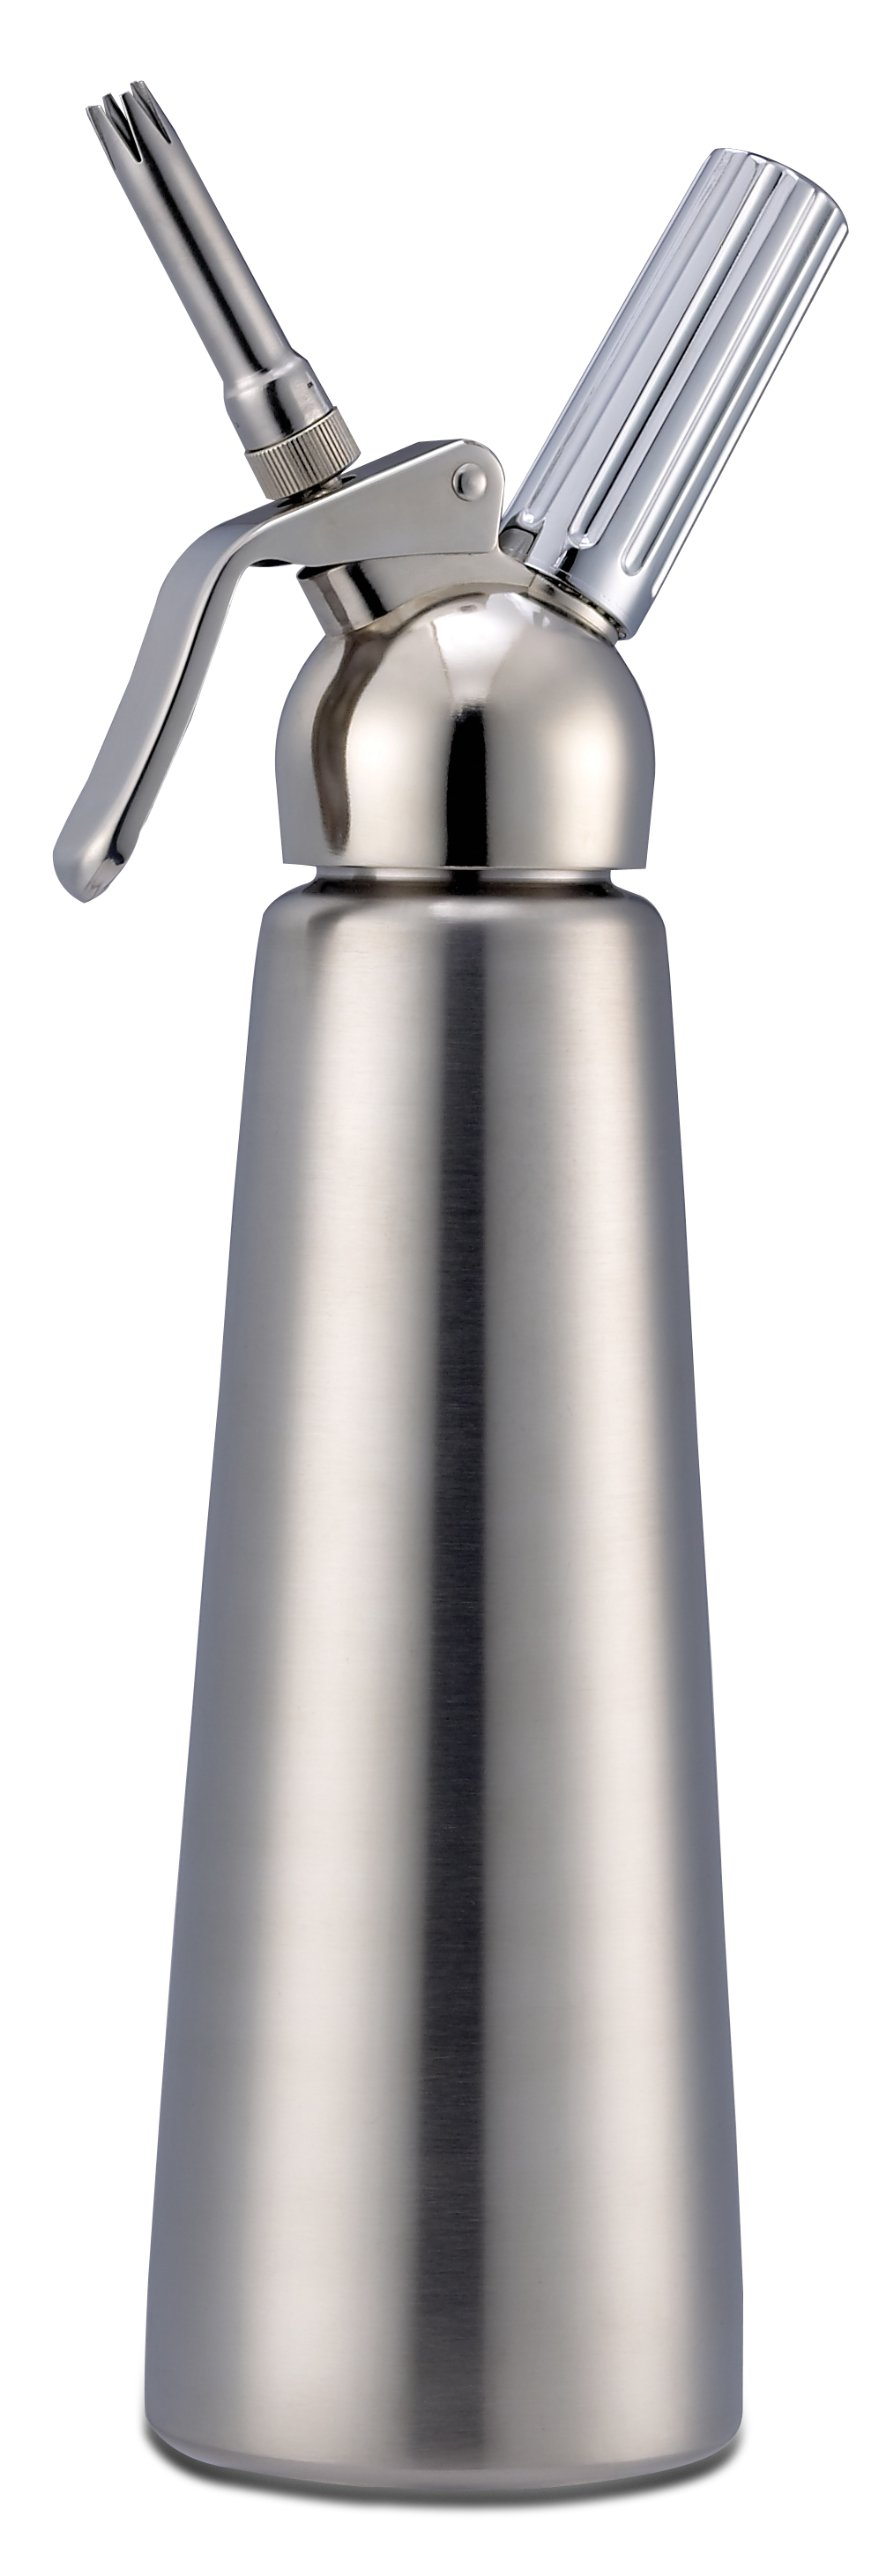 Chef Master Professional Whipped Cream Dispenser  image